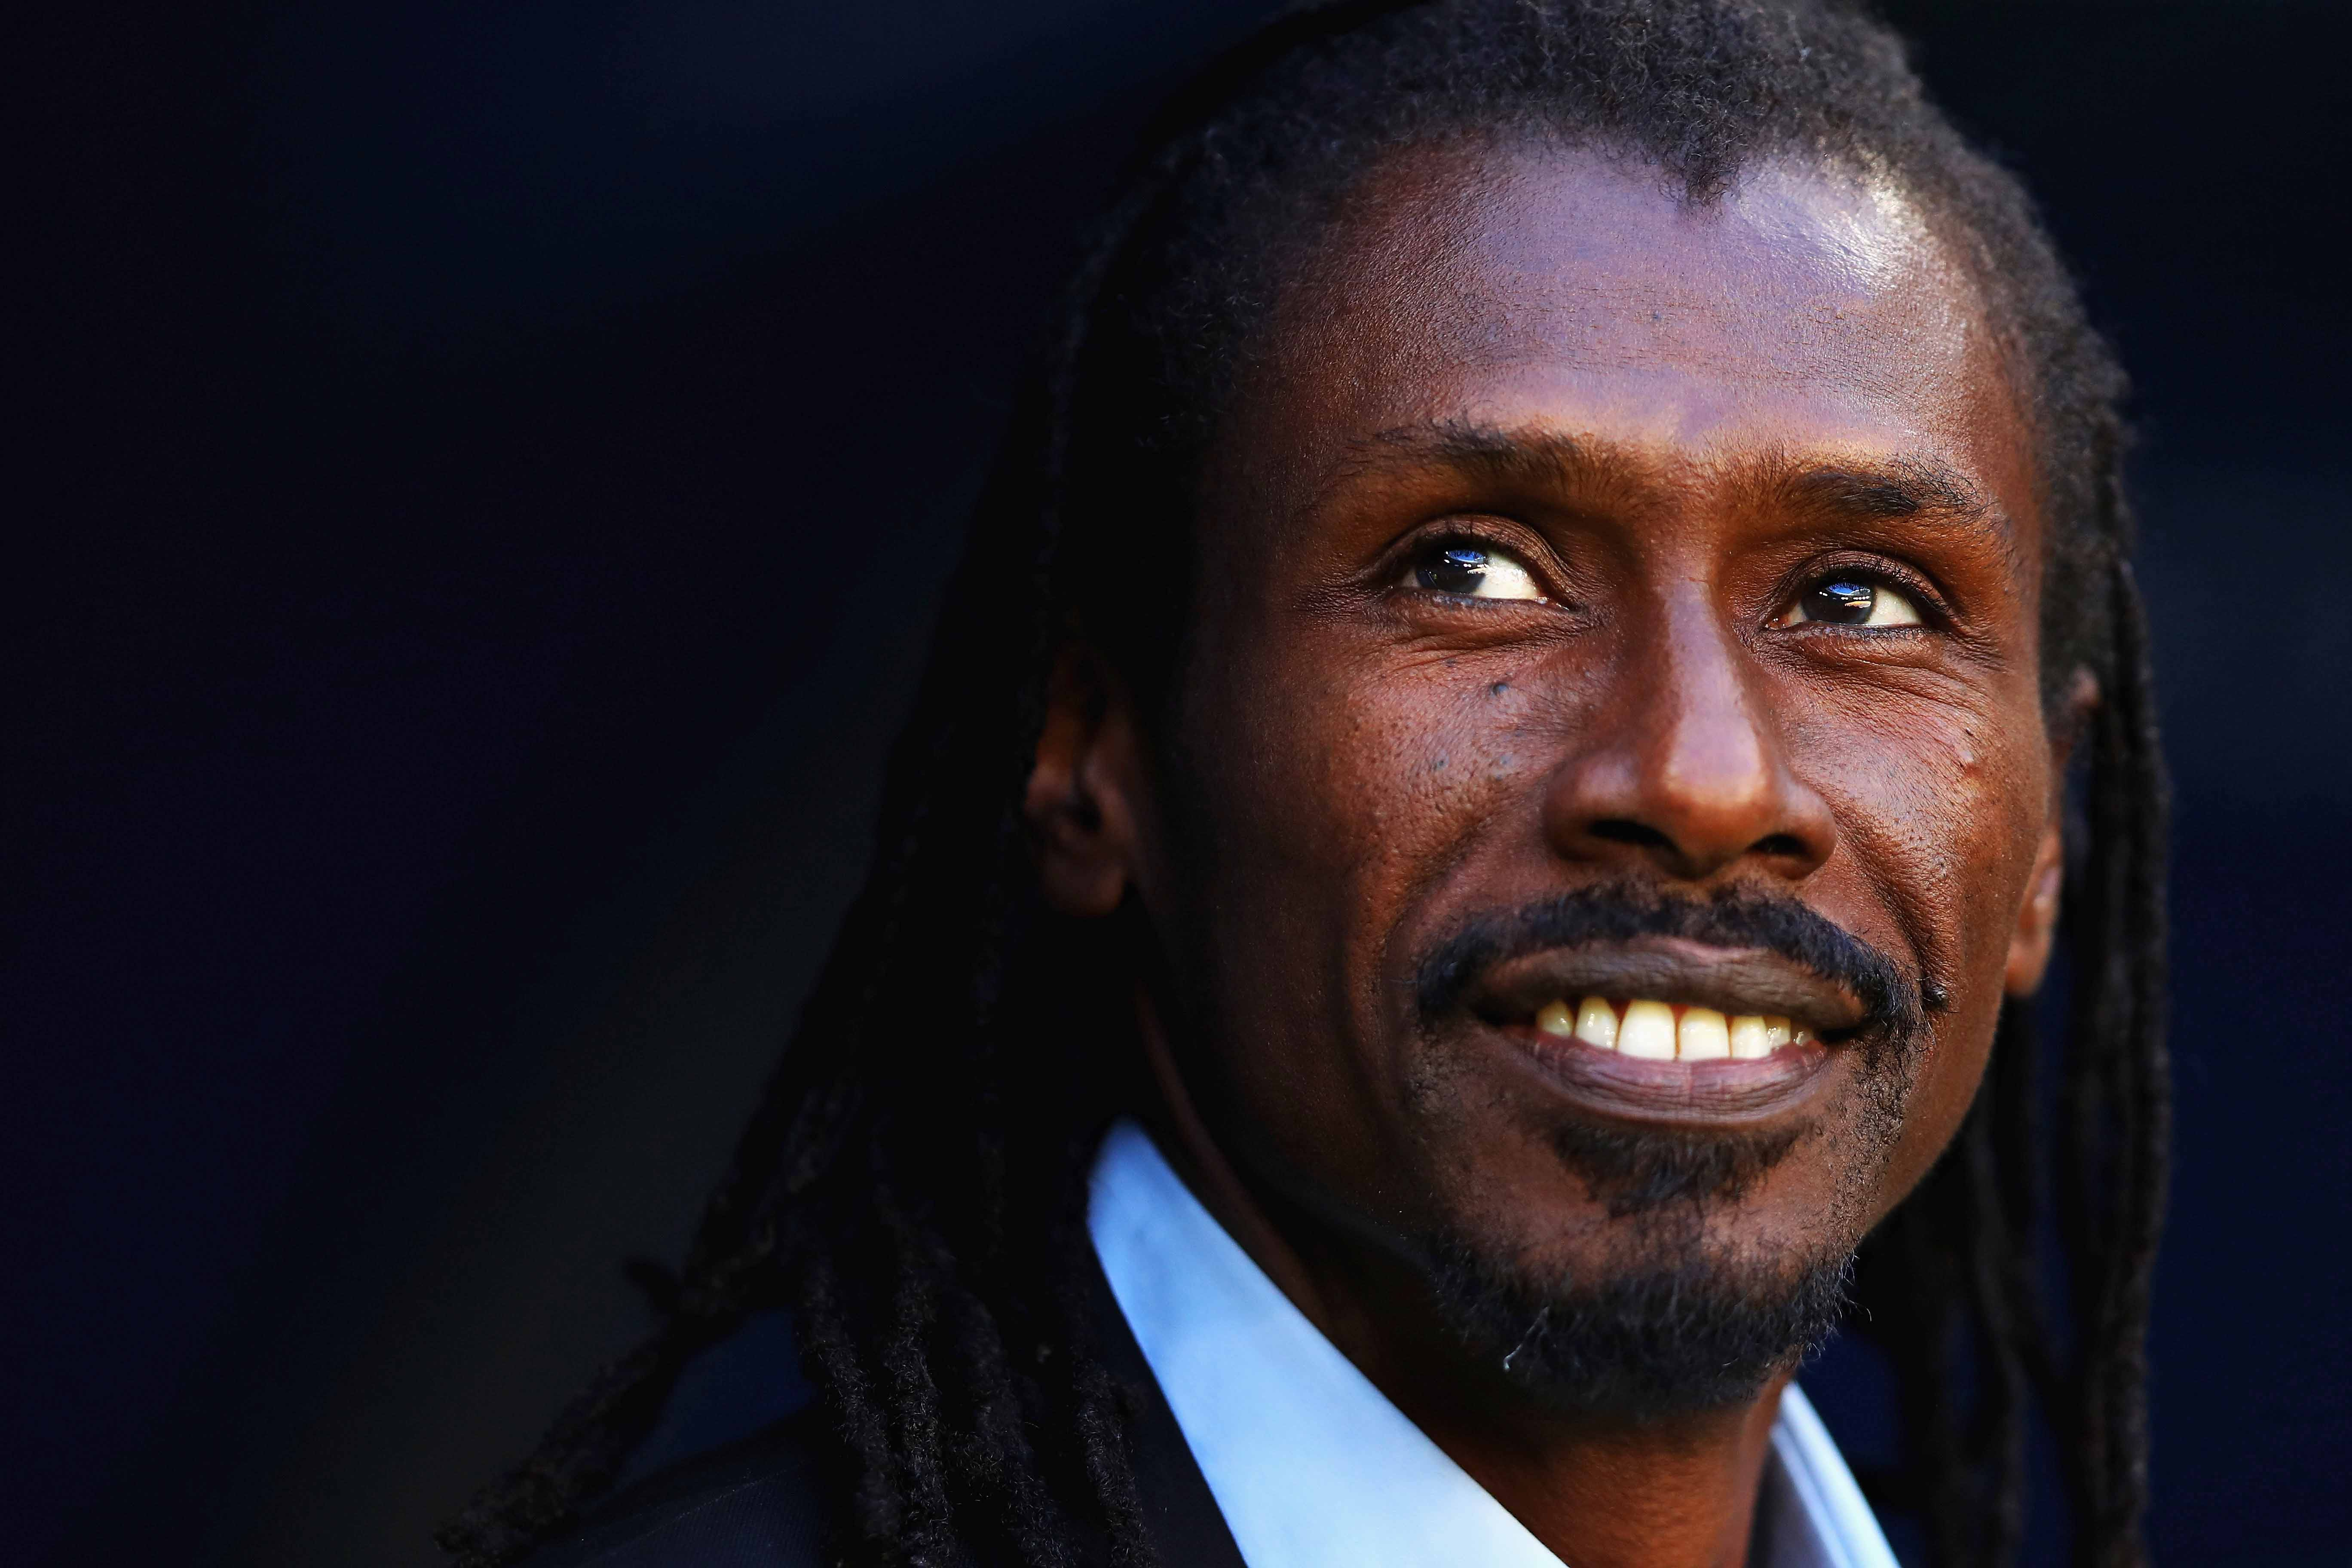 28 June 2018: Senegal coach Aliou Cissé before his team's Fifa World Cup group stage match against Colombia in Samara, Russia. (Photograph by Dean Mouhtaropoulos/Getty Images)